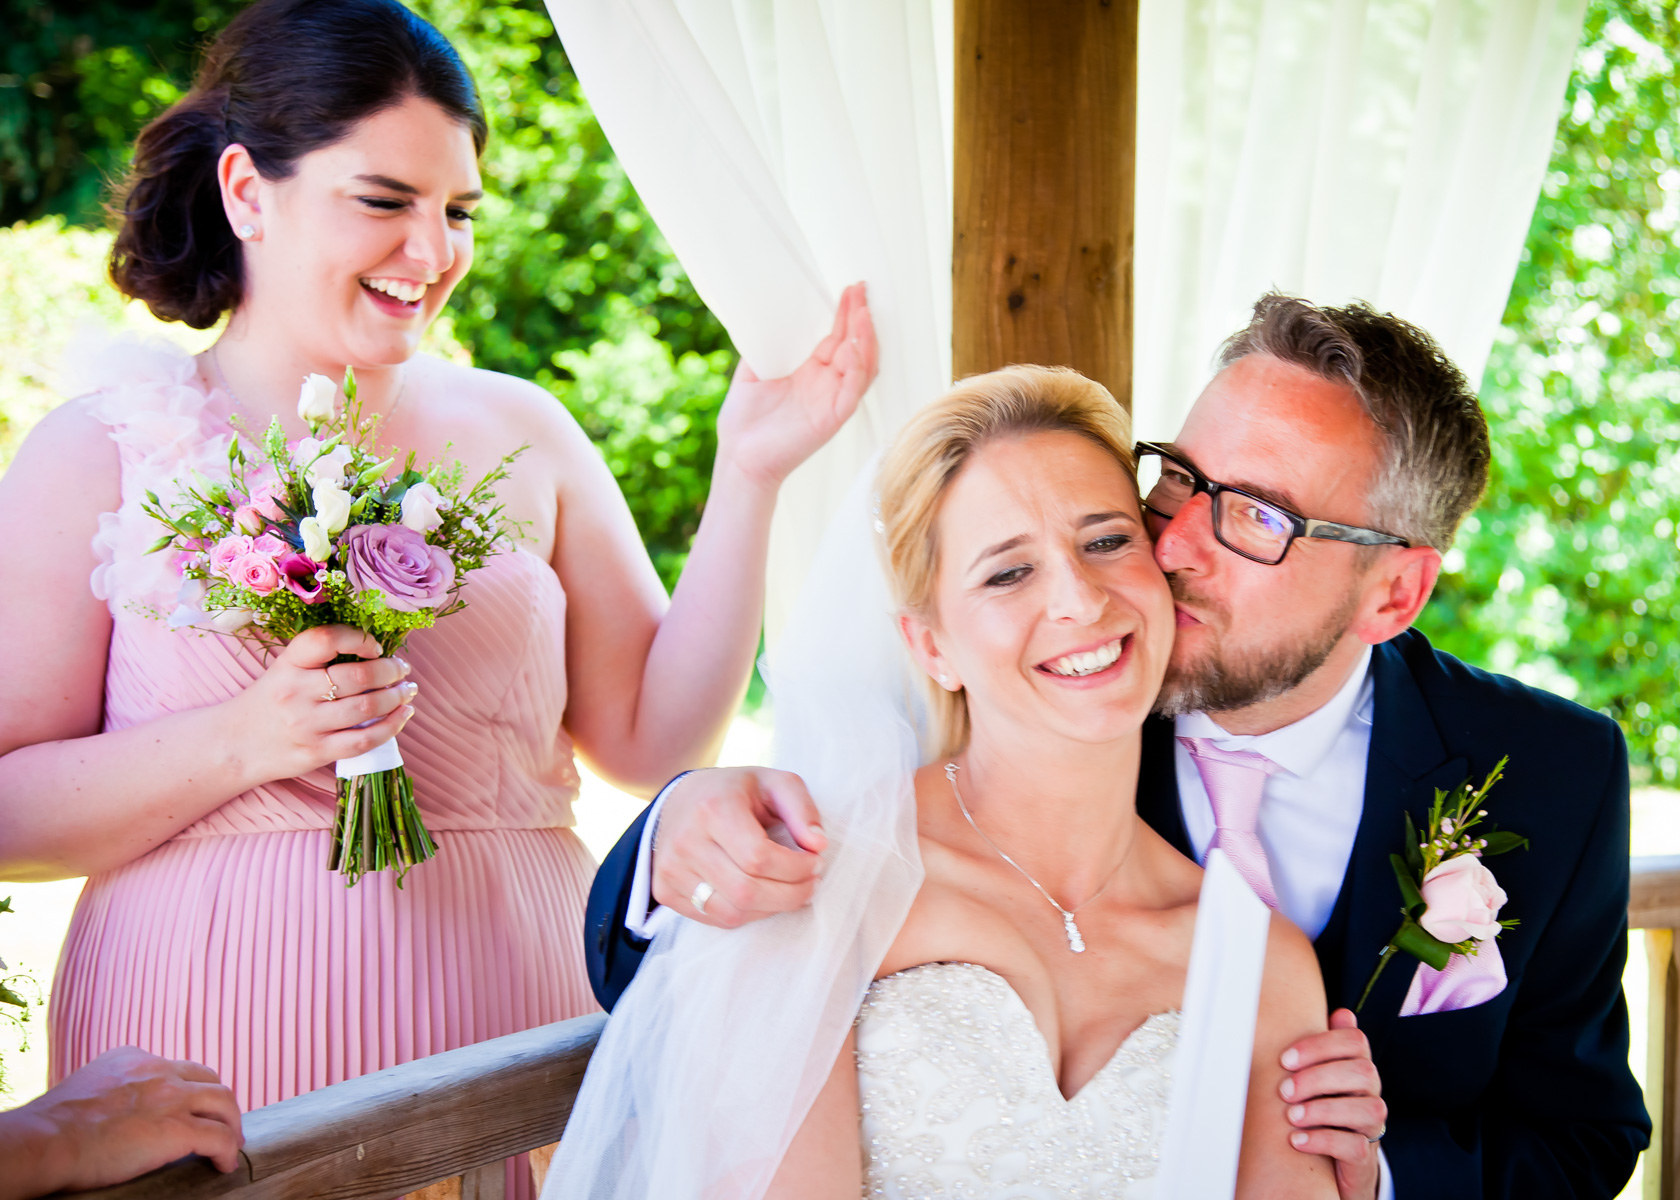 TrueWeddingPhotos.com-4187